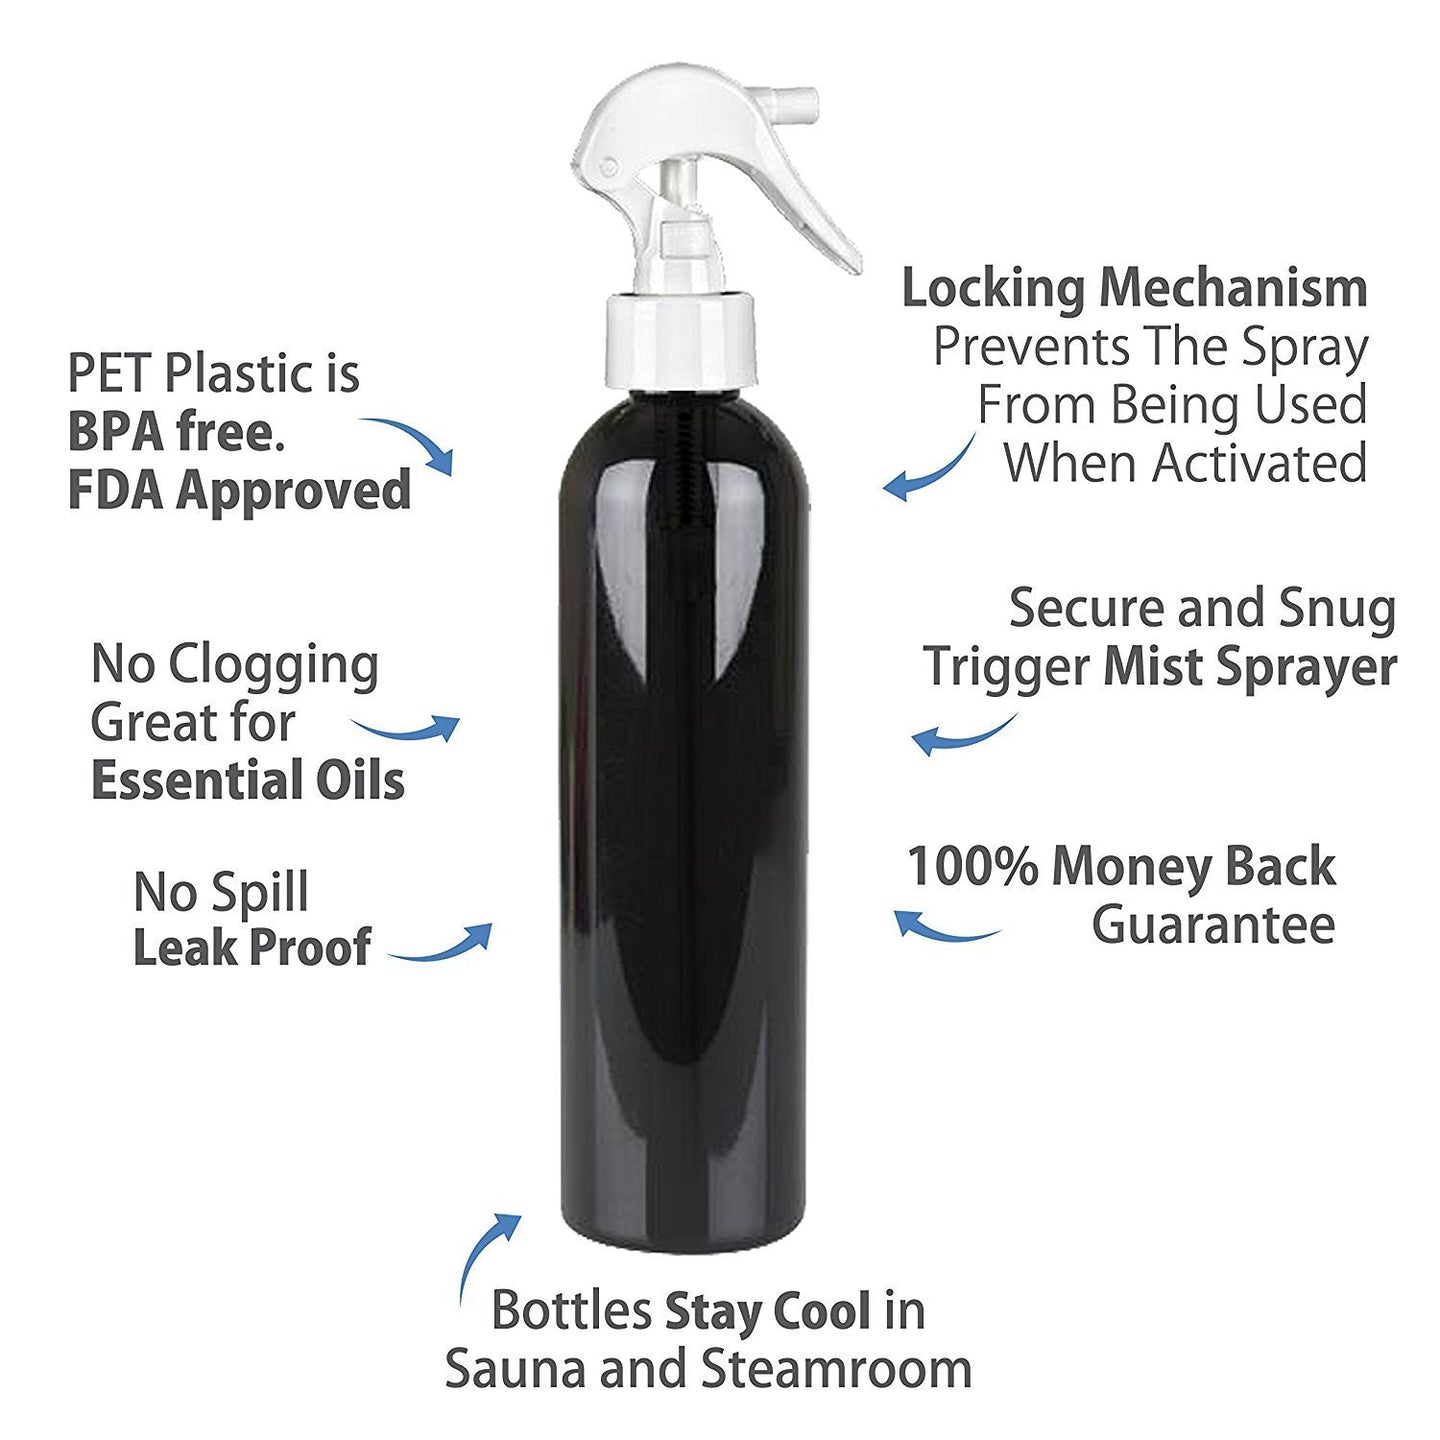 MoYo Natural Labs 8 oz Spray Bottles, Trigger Sprayer Empty Travel Containers, BPA Free PET Plastic for Essential Oils and Liquids/Cosmetics (Pack of 1, Black)